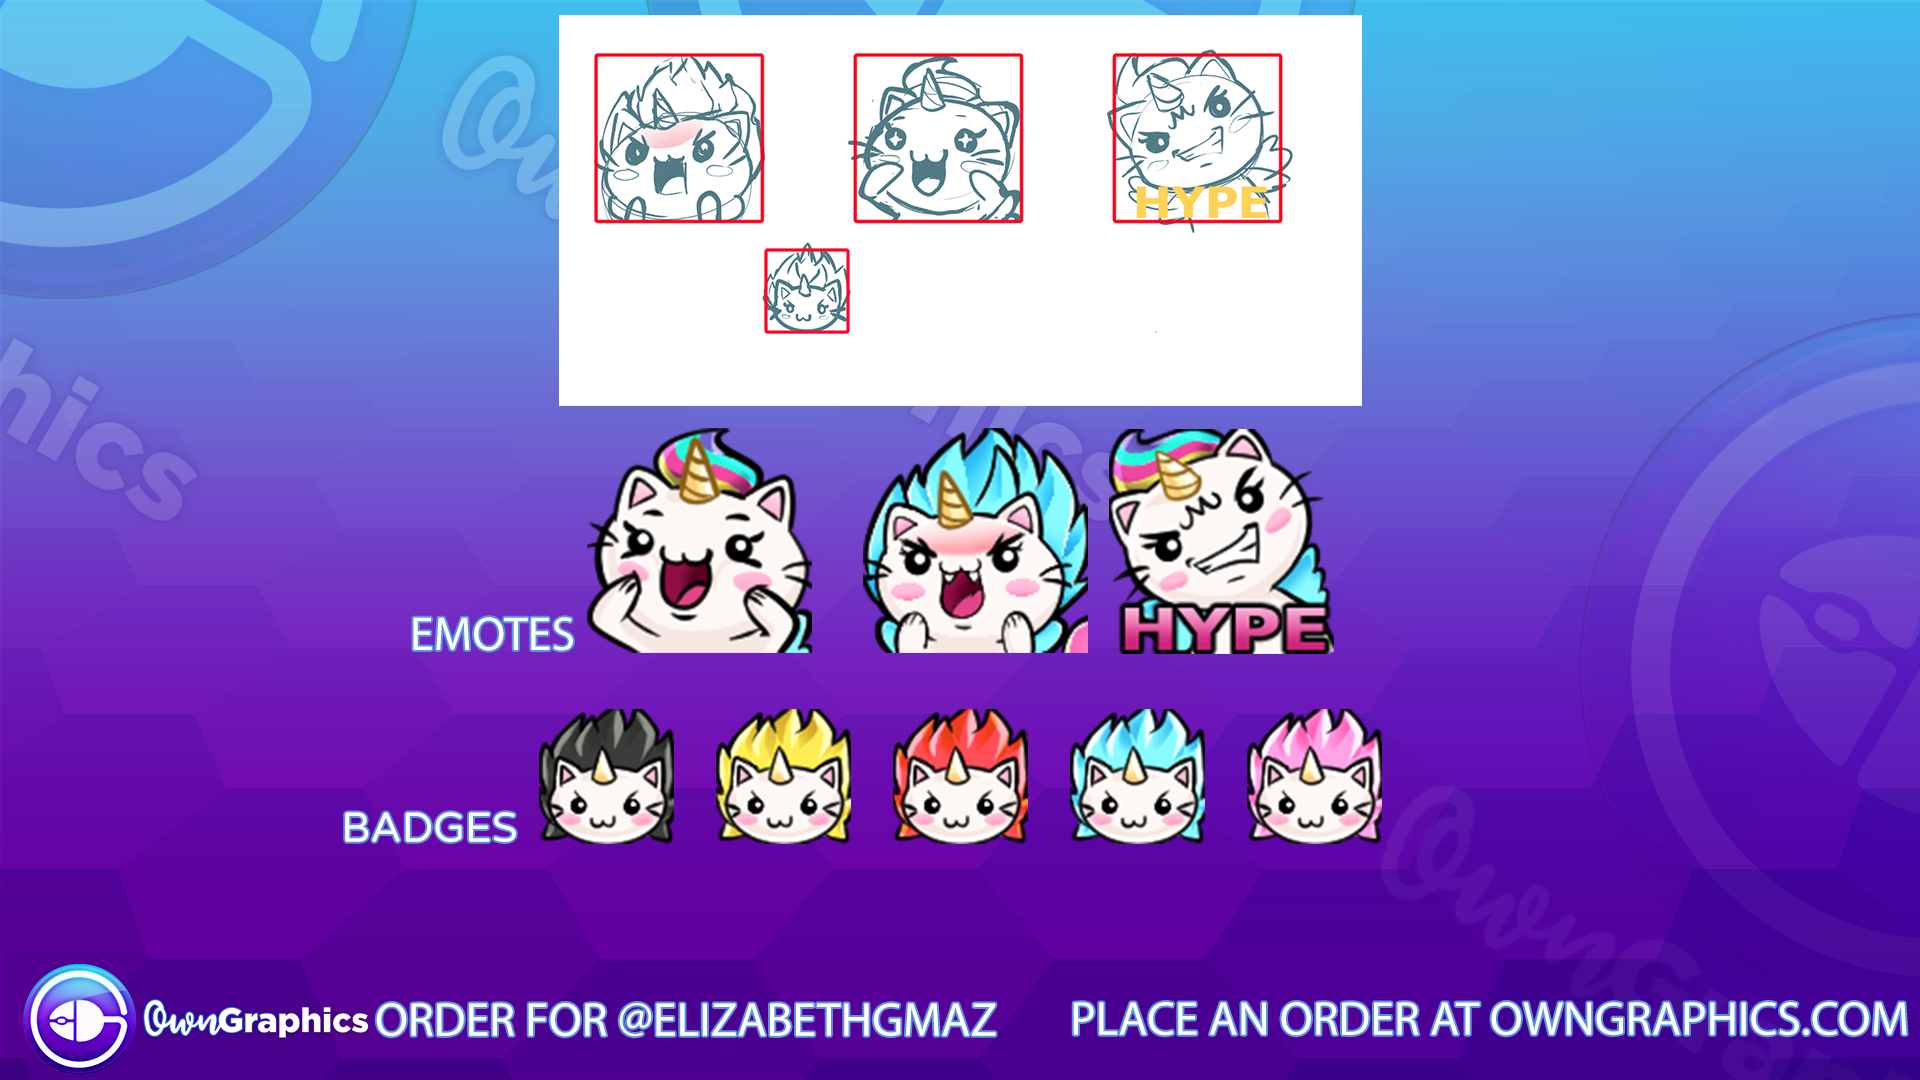 Custom emotes for gmazgul